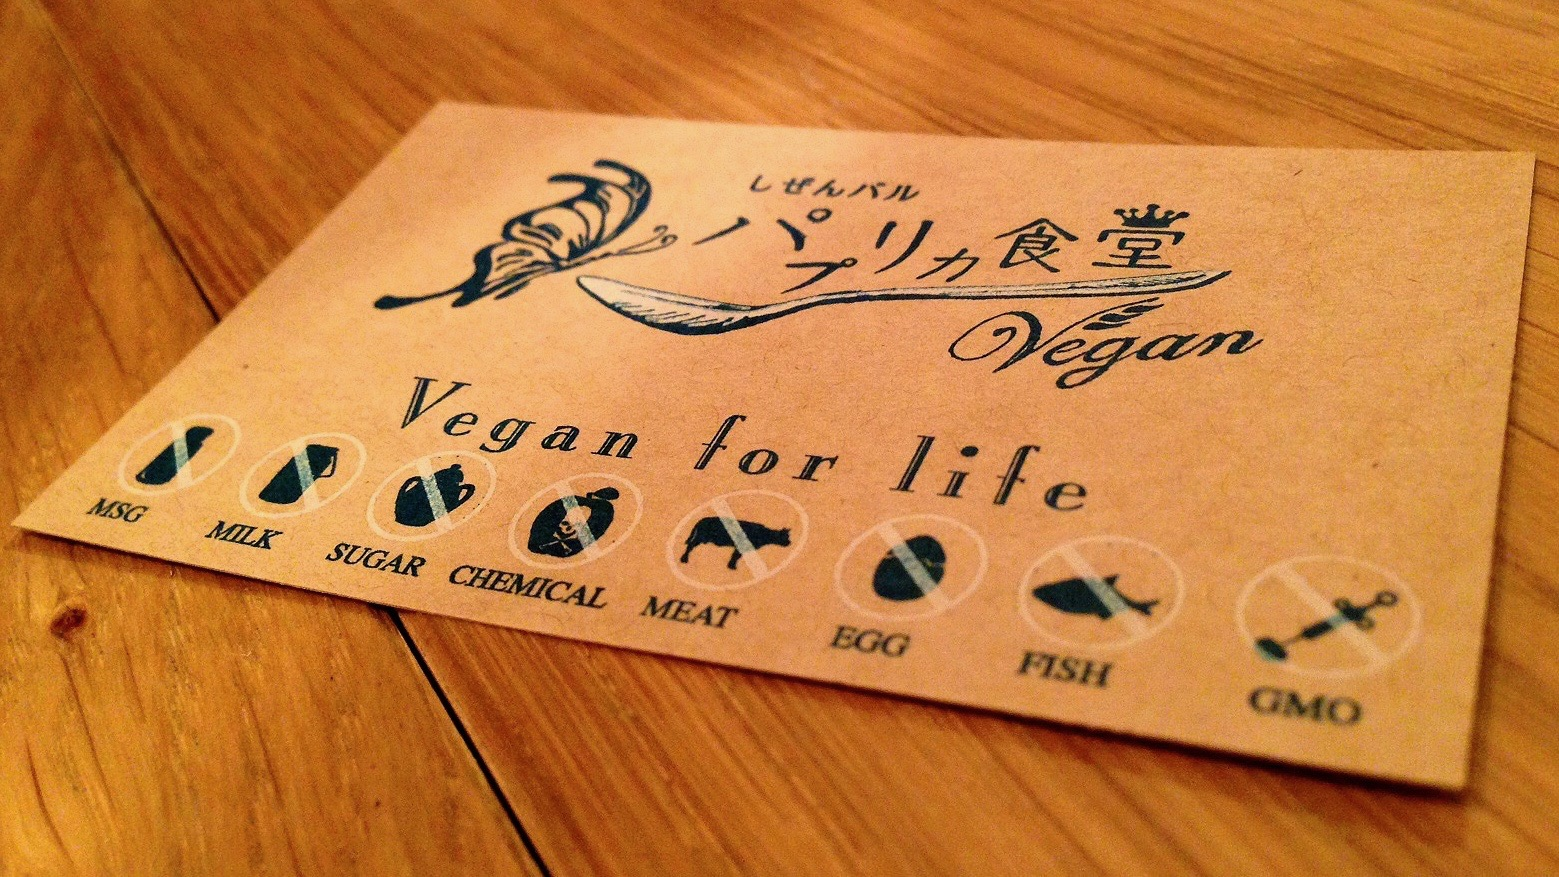 Paprika_Shokudo_Vegan_Business_Card2